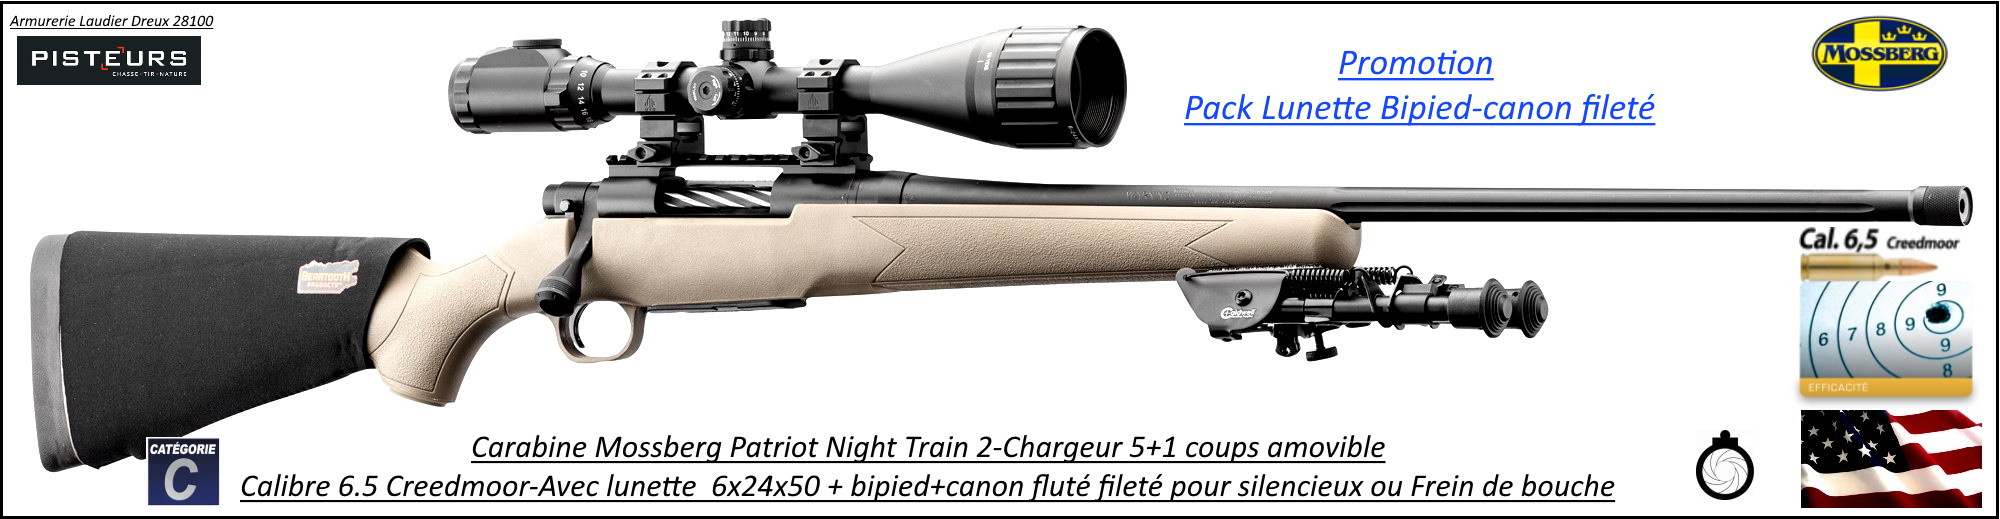 Carabine Mossberg night patriot train 2 Calibre 6.5 Creedmoor Pack-lunette-bipied-filetée-Répétition-TIRS-LONGUES-DISTANCES-Promotion-Ref MO8001